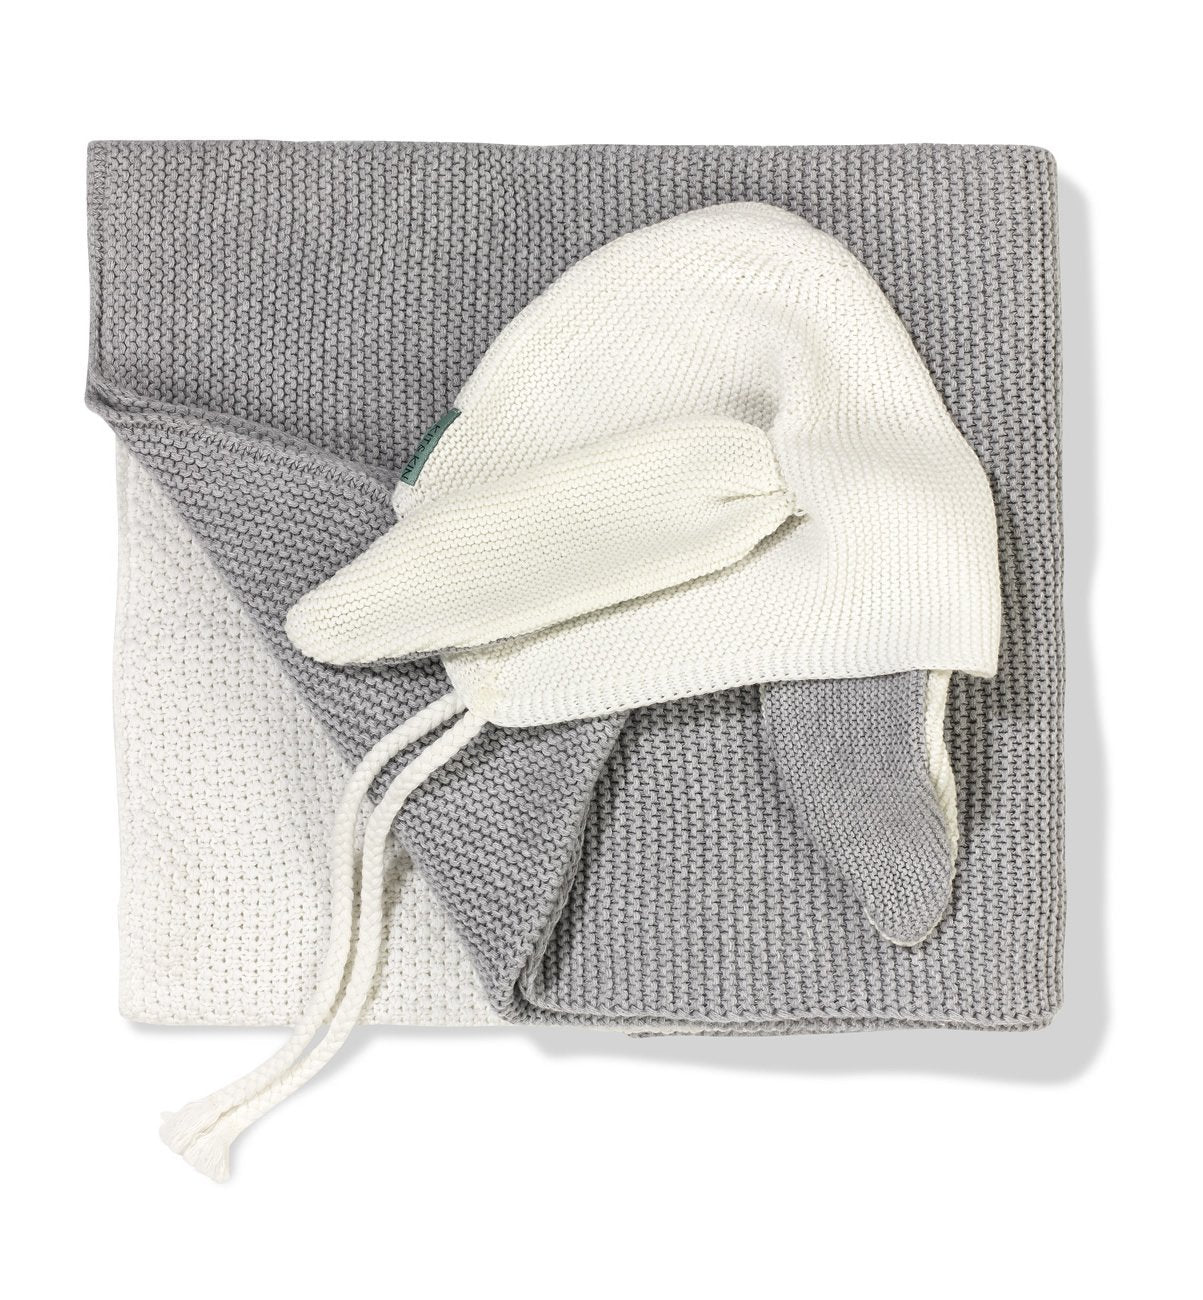 White Hat and blanket bundle